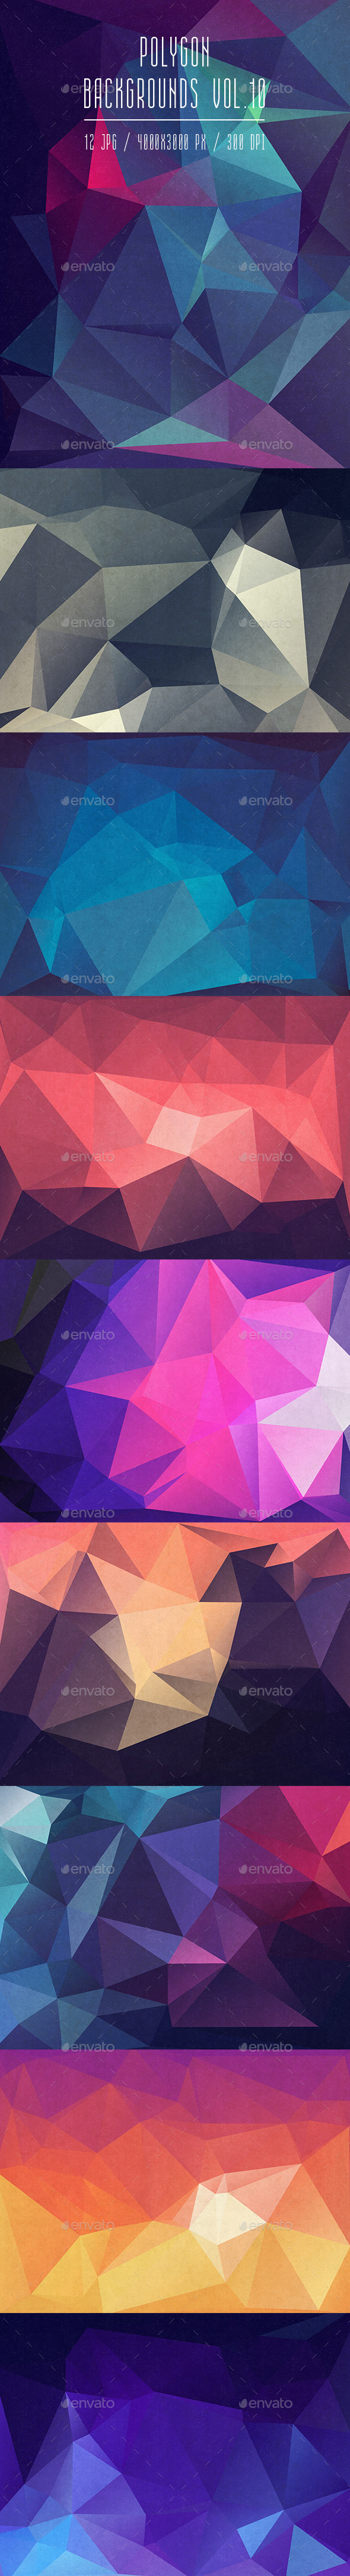 Polygon Backgrounds Vol.10 - Abstract Backgrounds